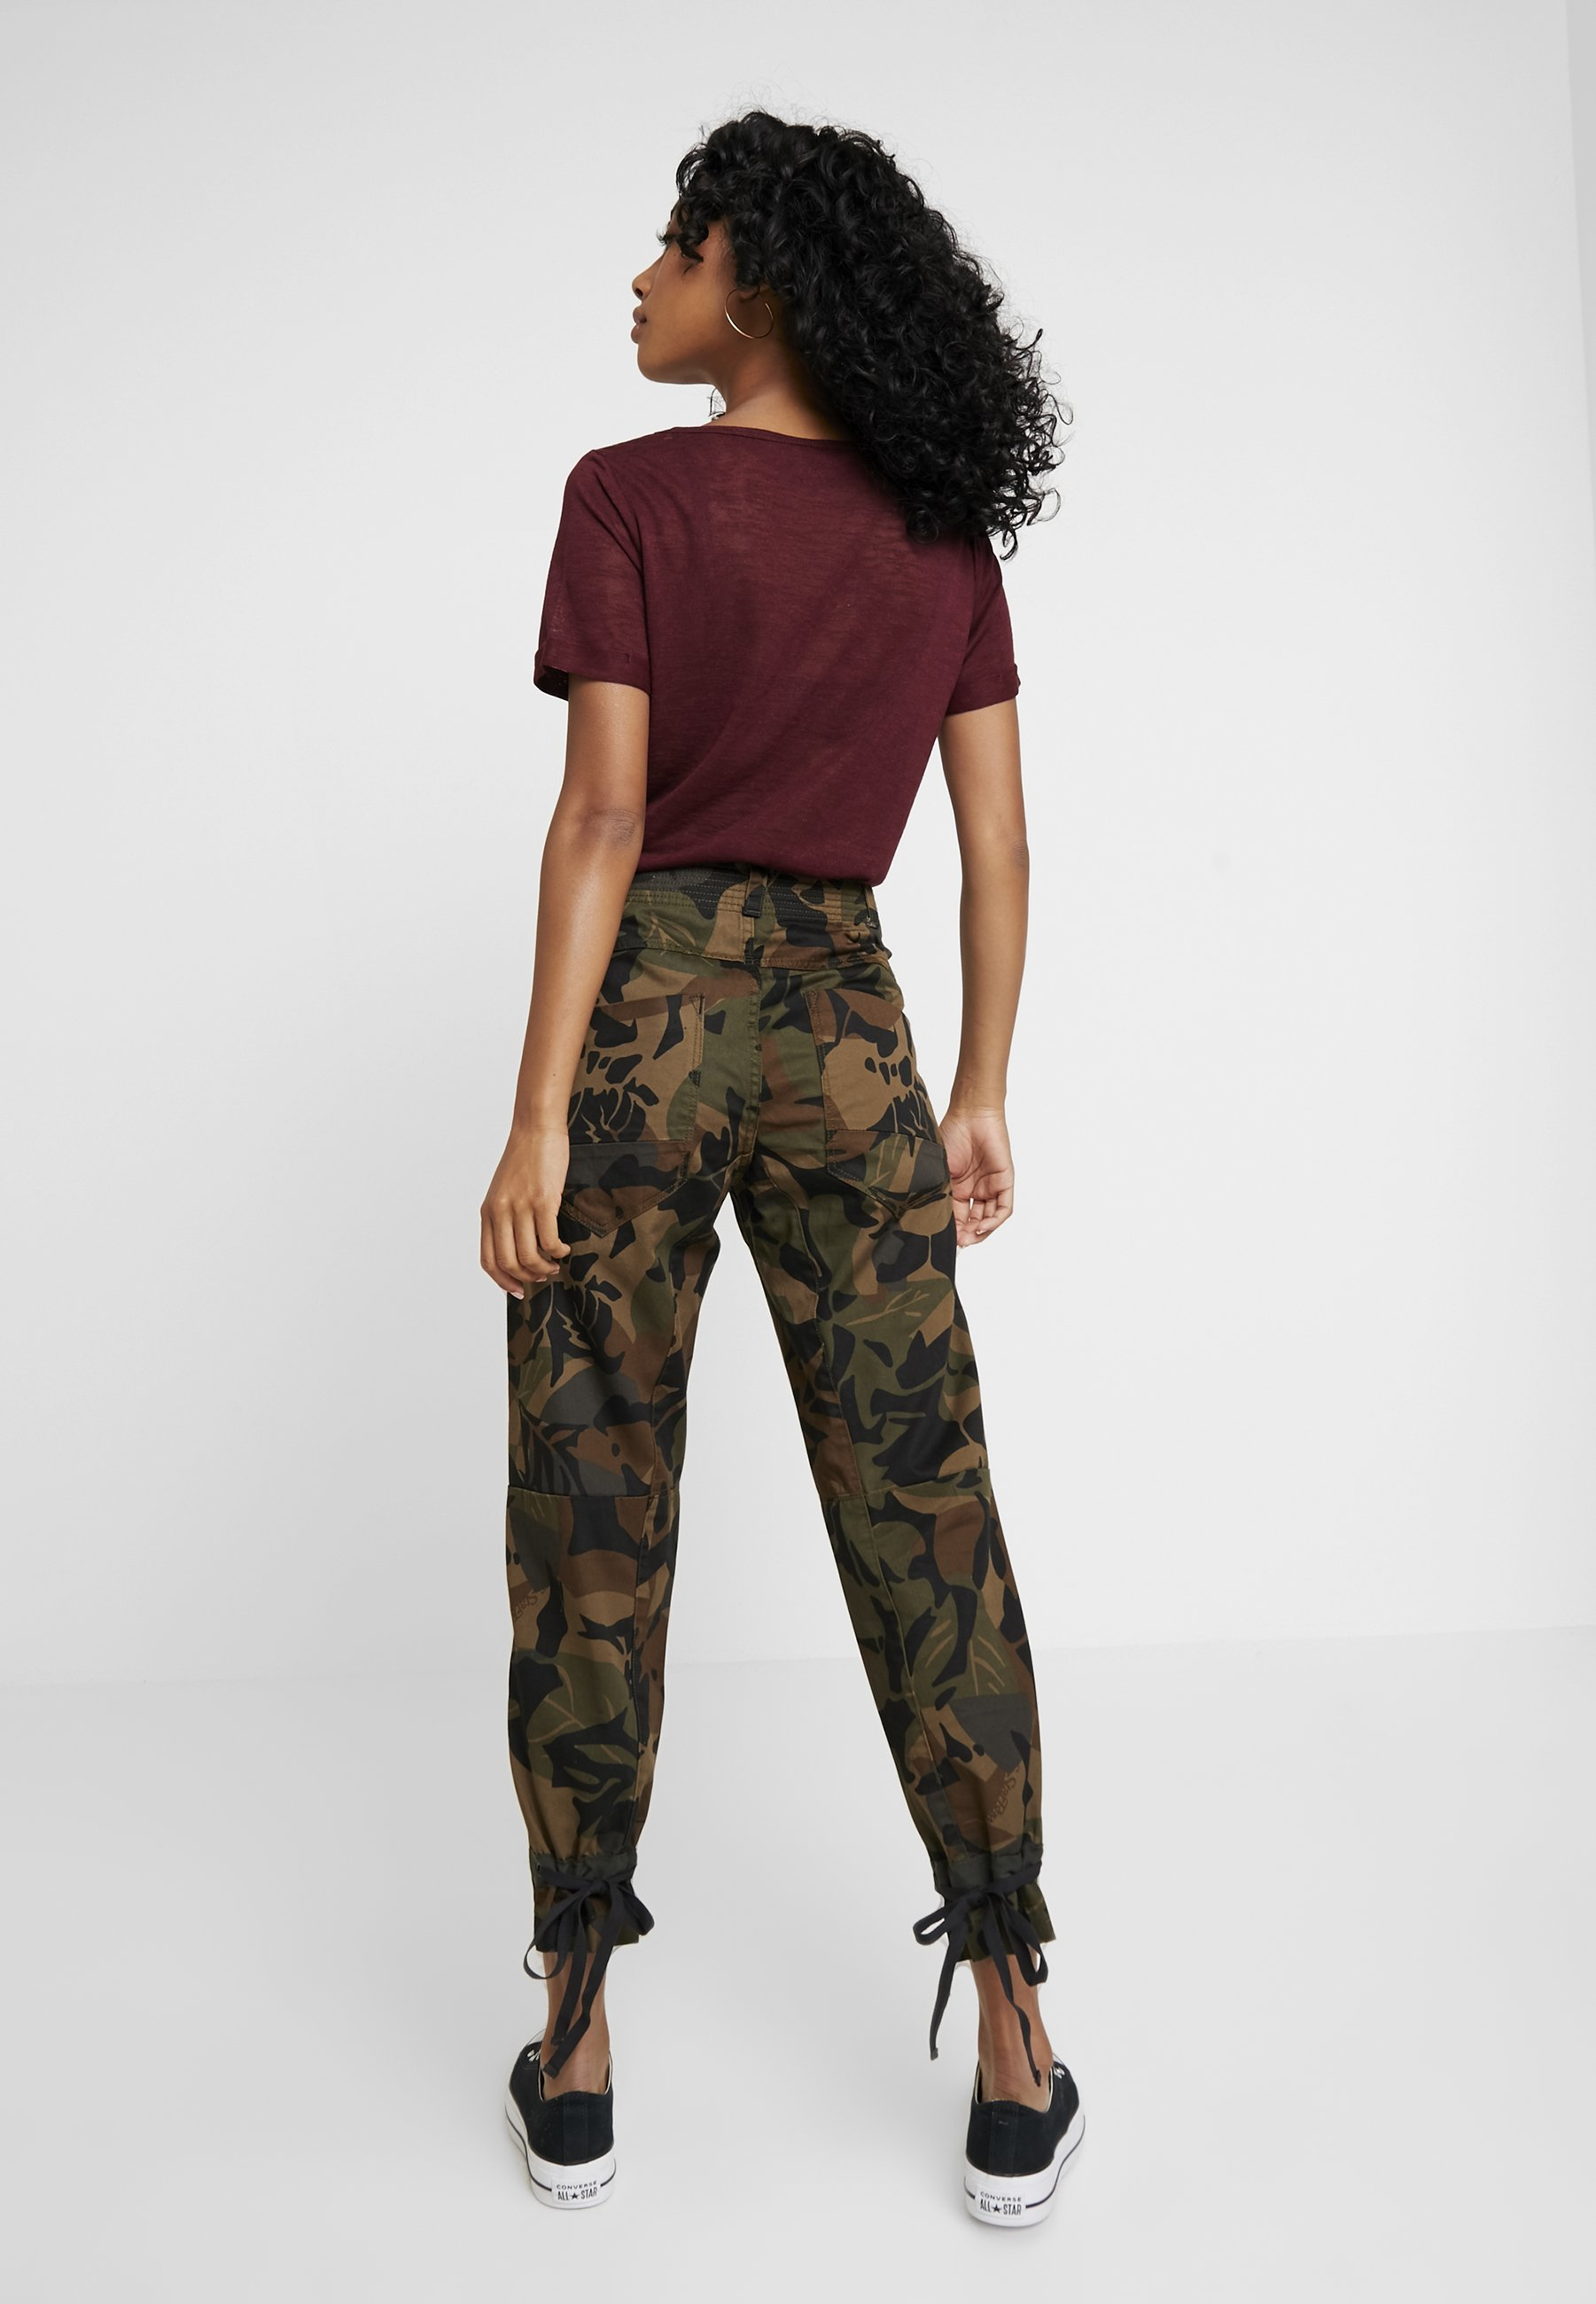 StrapJeans Wild Fuselé G forest Olive Radar star Night Army nwk8OX0NP